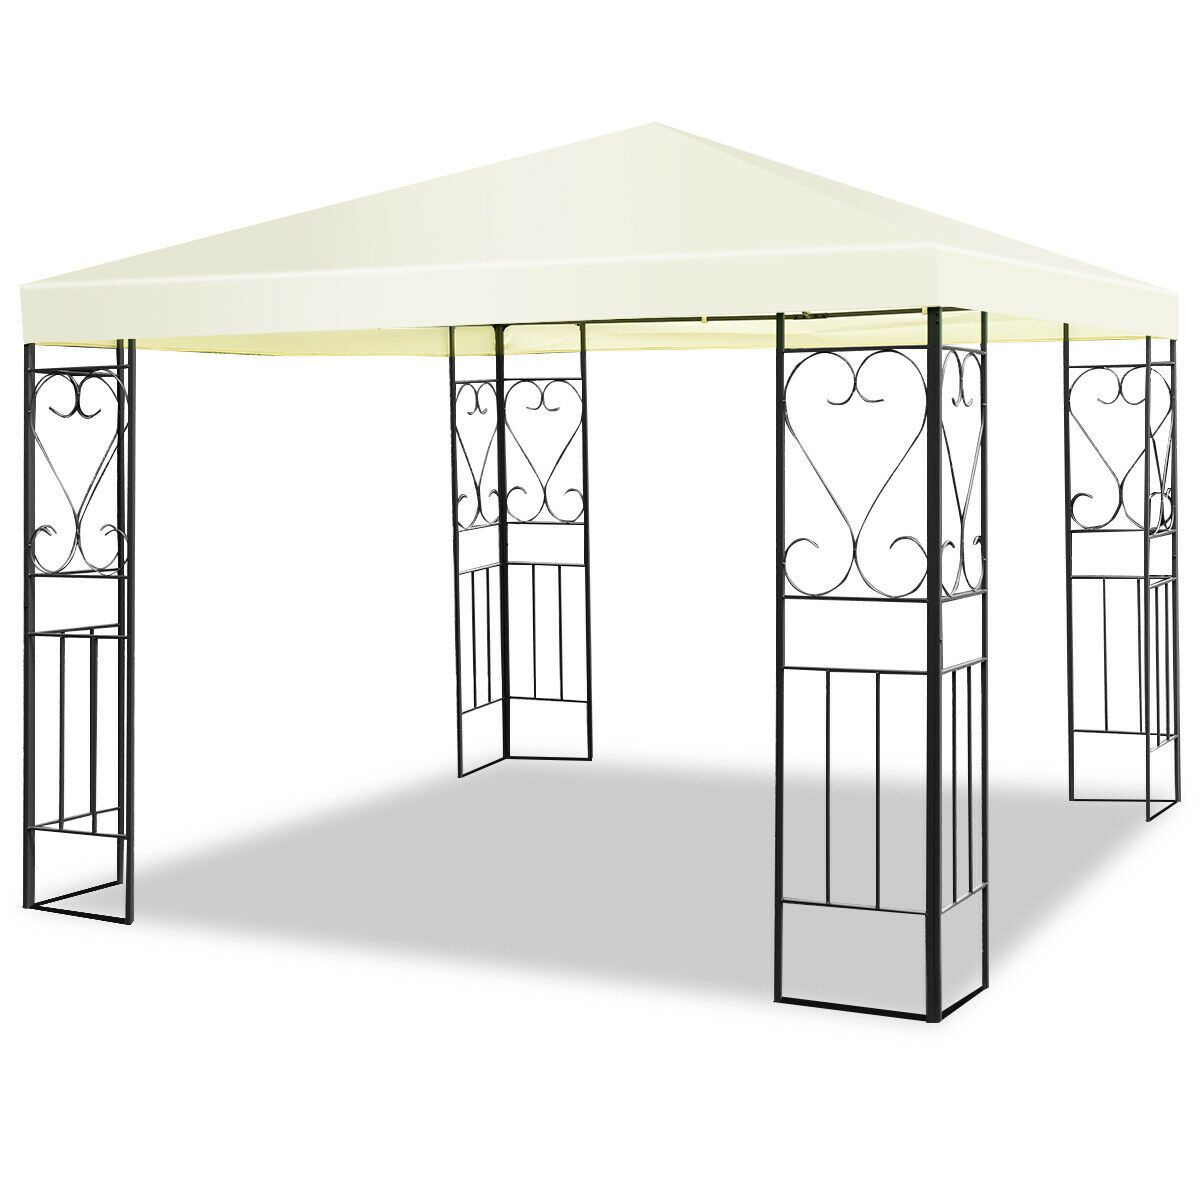 10 X10 Patio Gazebo Canopy Tent Steel Frame Shelter Patio Party Awning In 2020 Patio Tents Patio Gazebo Canopy Tent